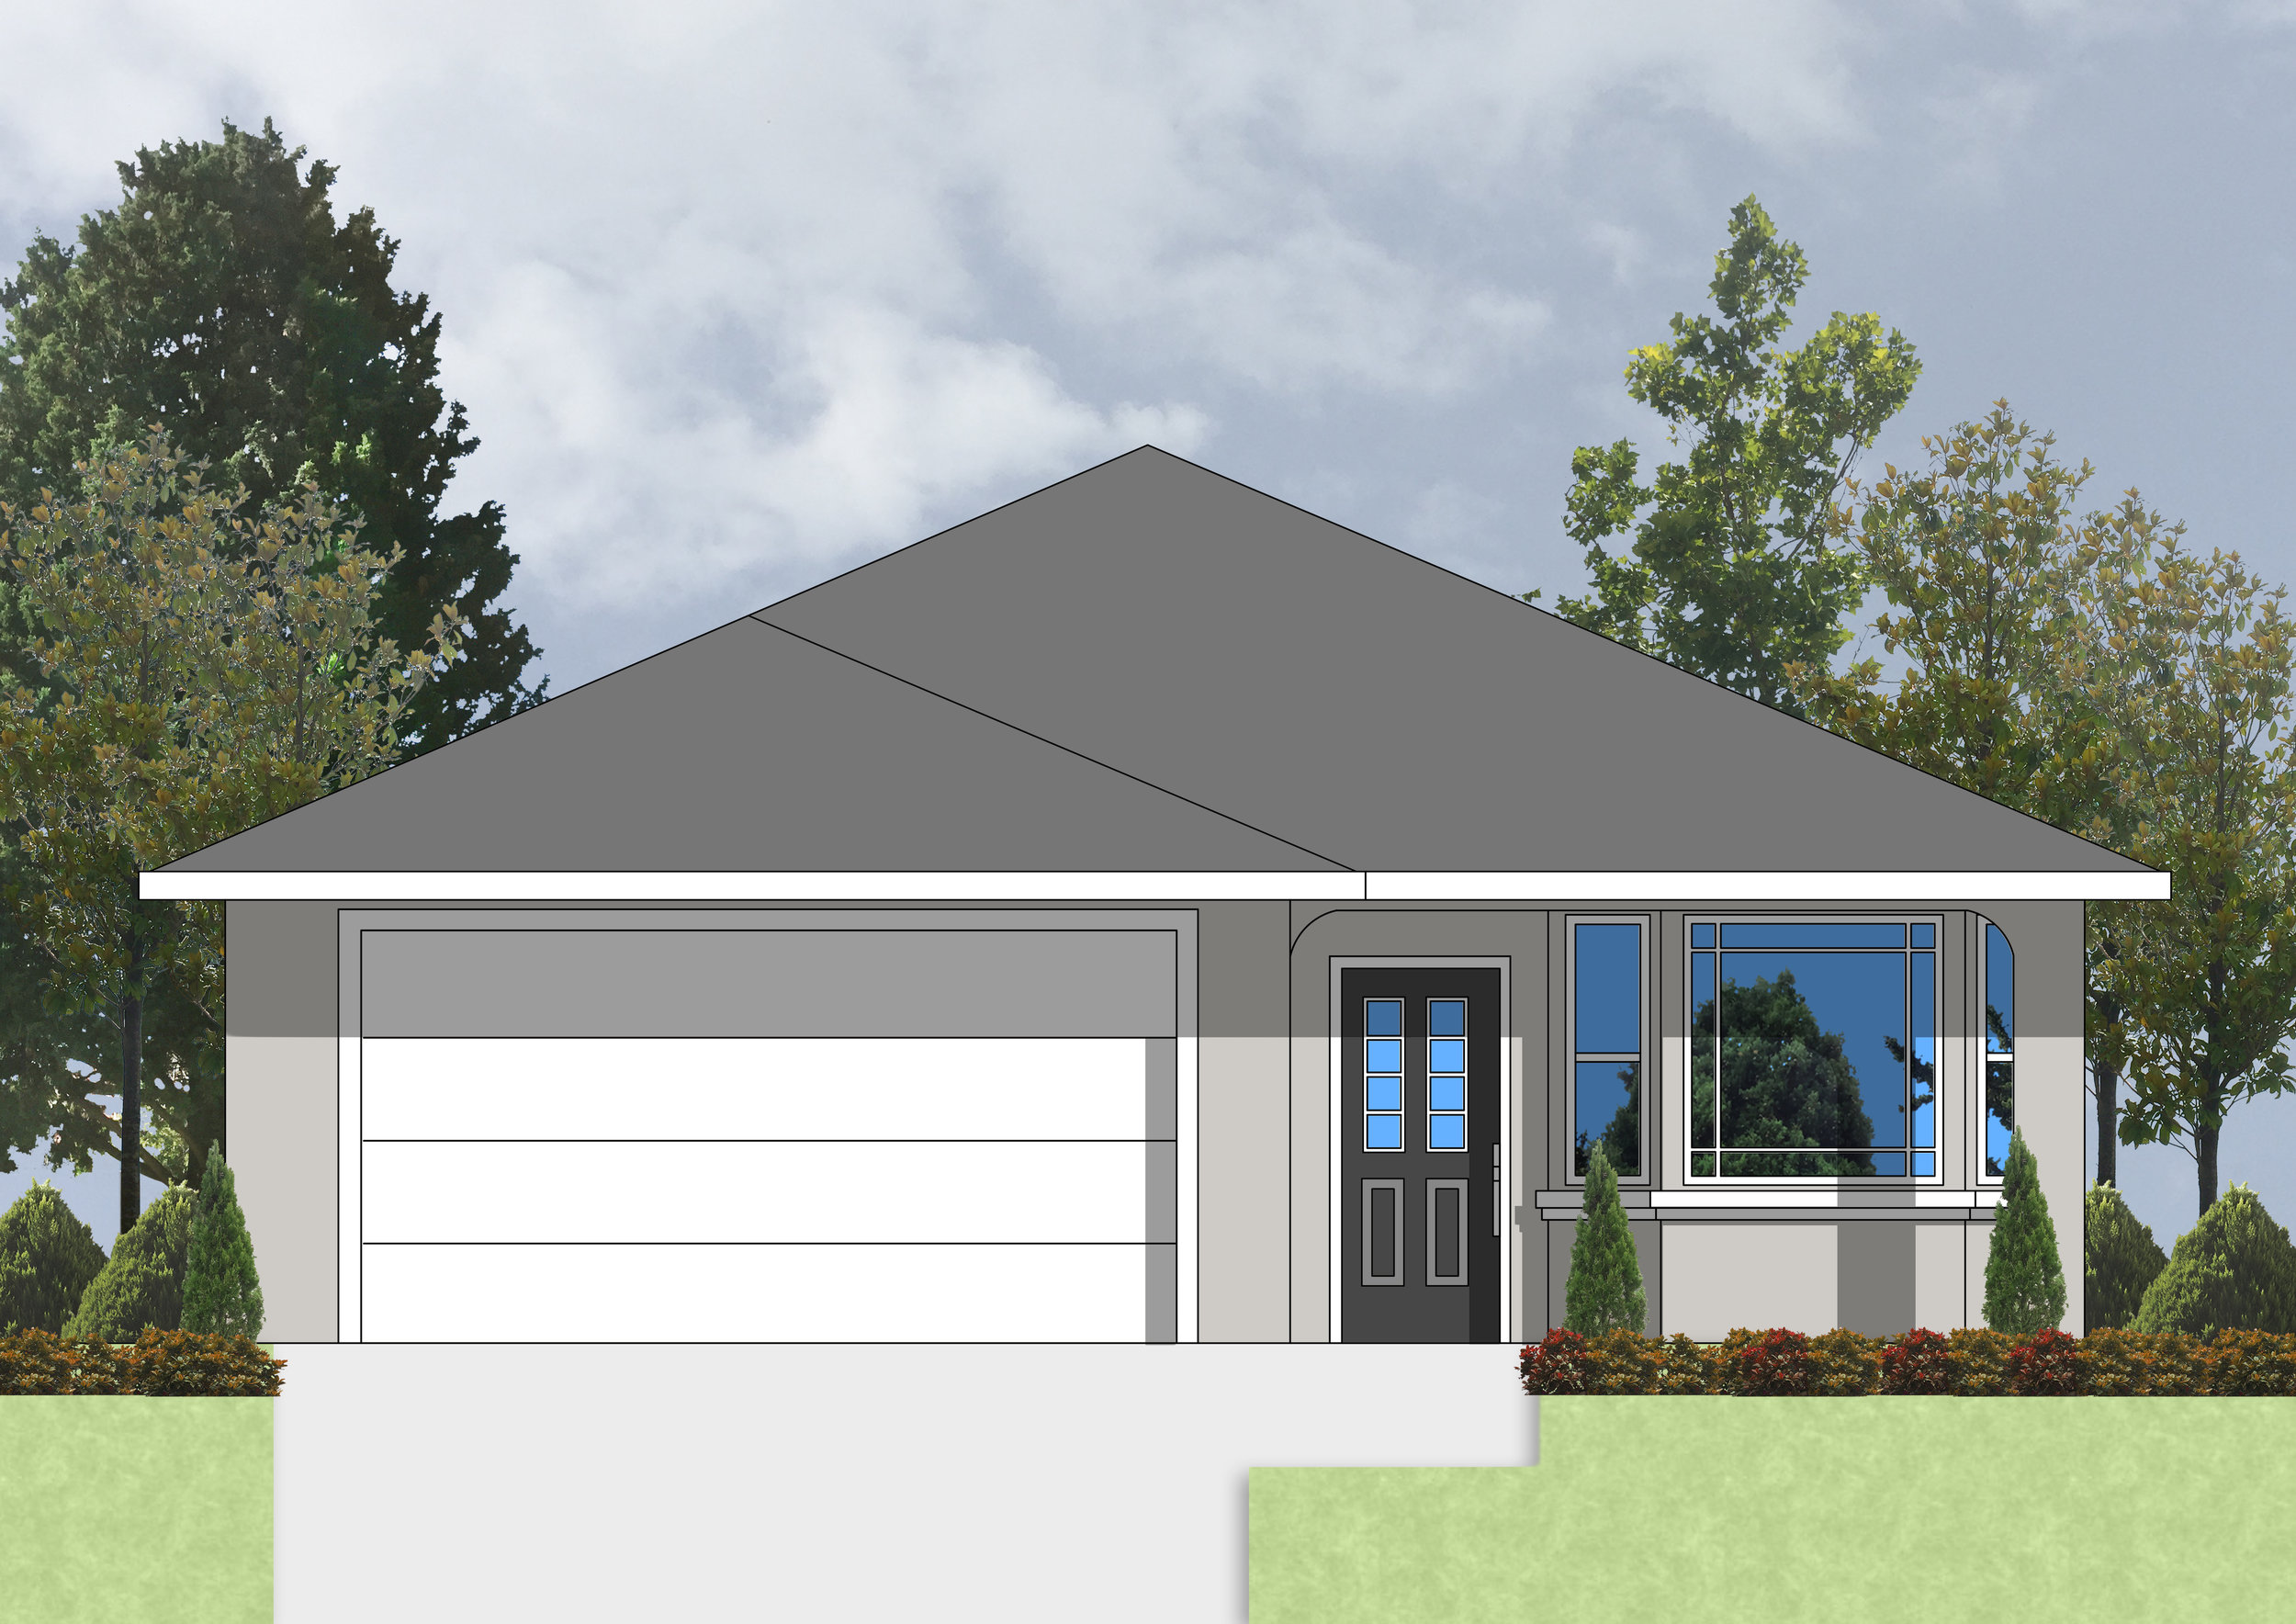 785 A ELEVATION RENDERING - revisioned 2.jpg